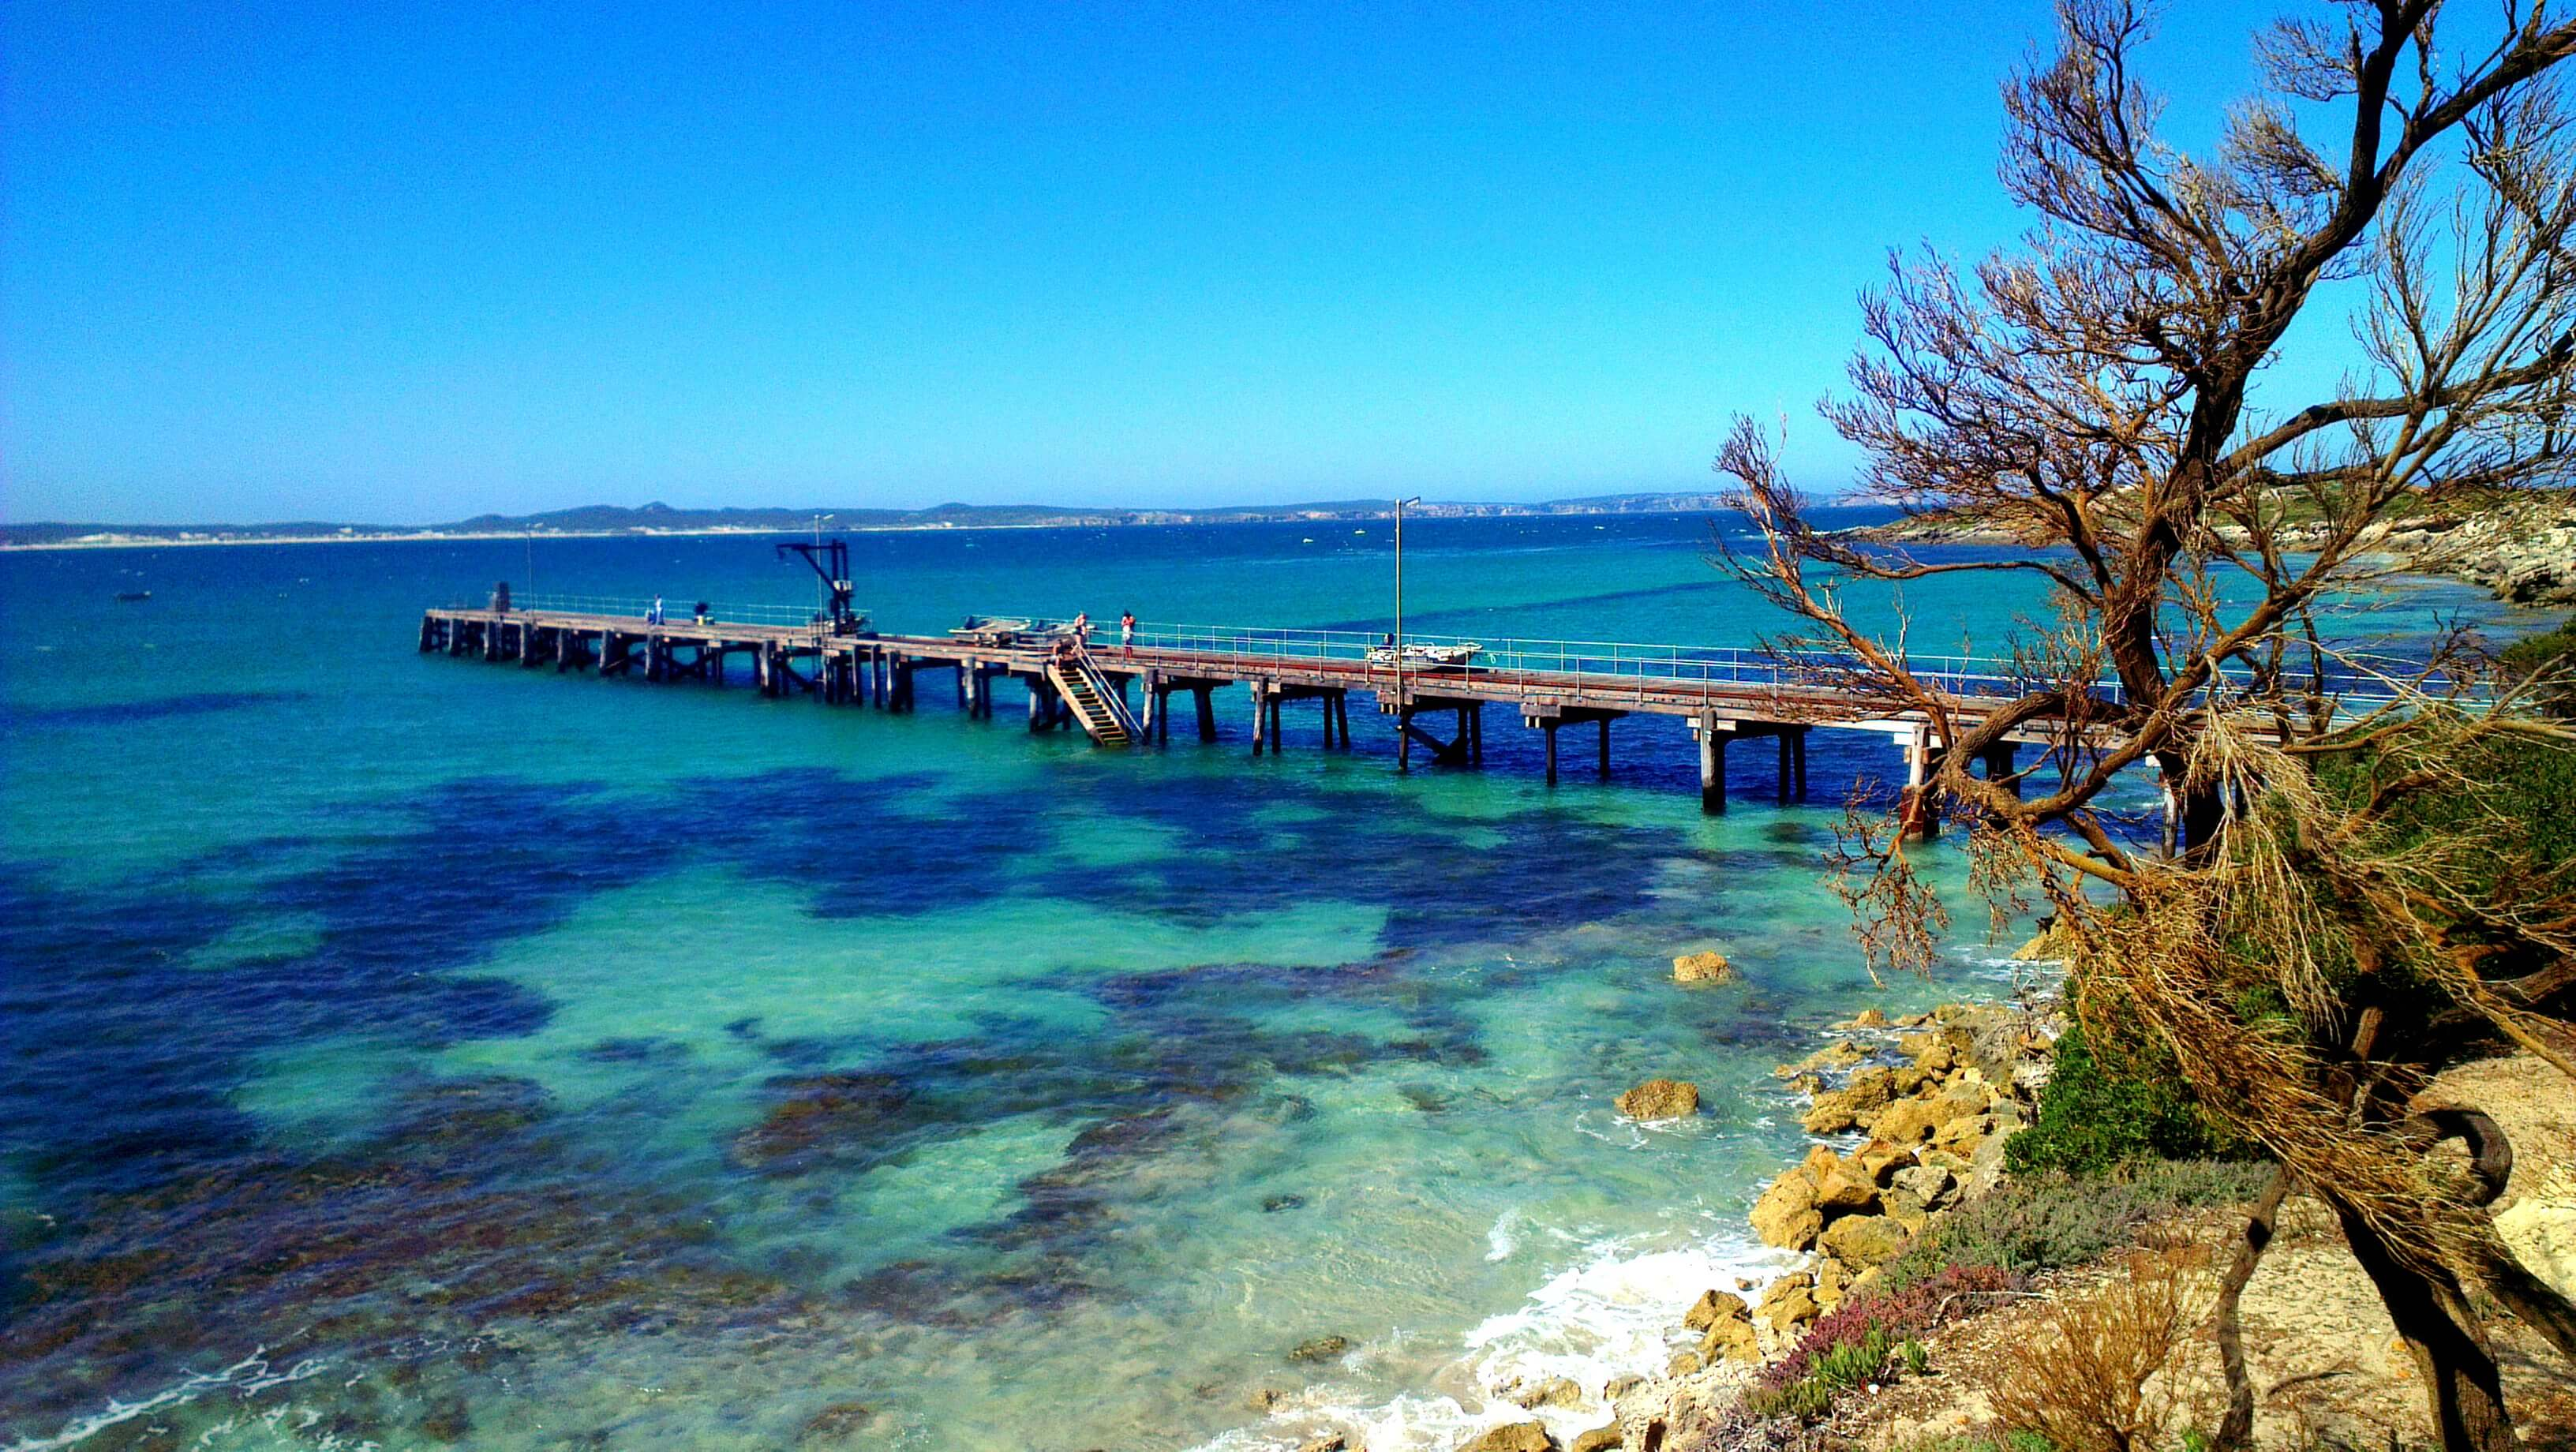 How many days should you spend on Kangaroo Island?